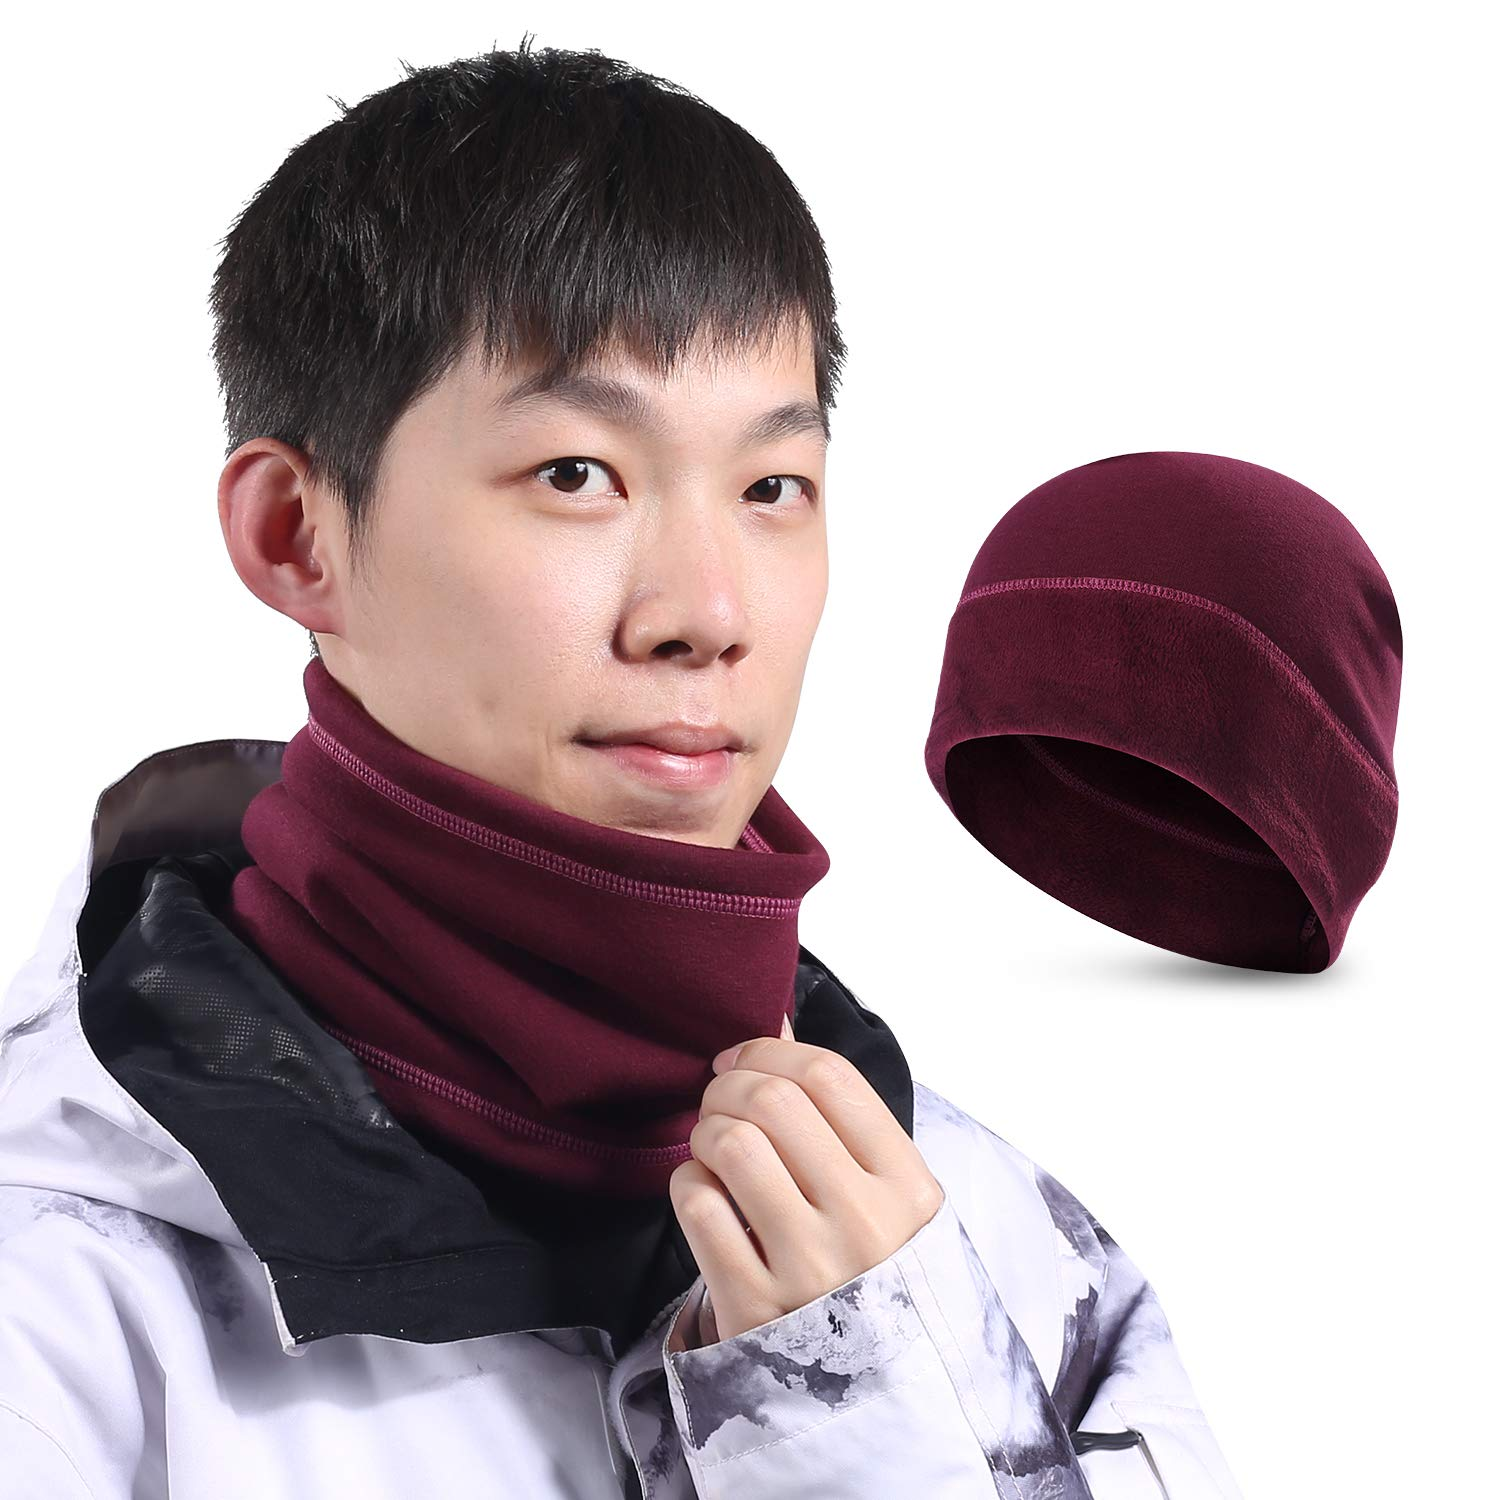 SUNMECI Neck Warmer Gaiter Scarf Beanie Hat Set Warm Fleece Lined Cold Weather Face Mask Skiing & Daily Use Men Women (2 Pieces) Ltd